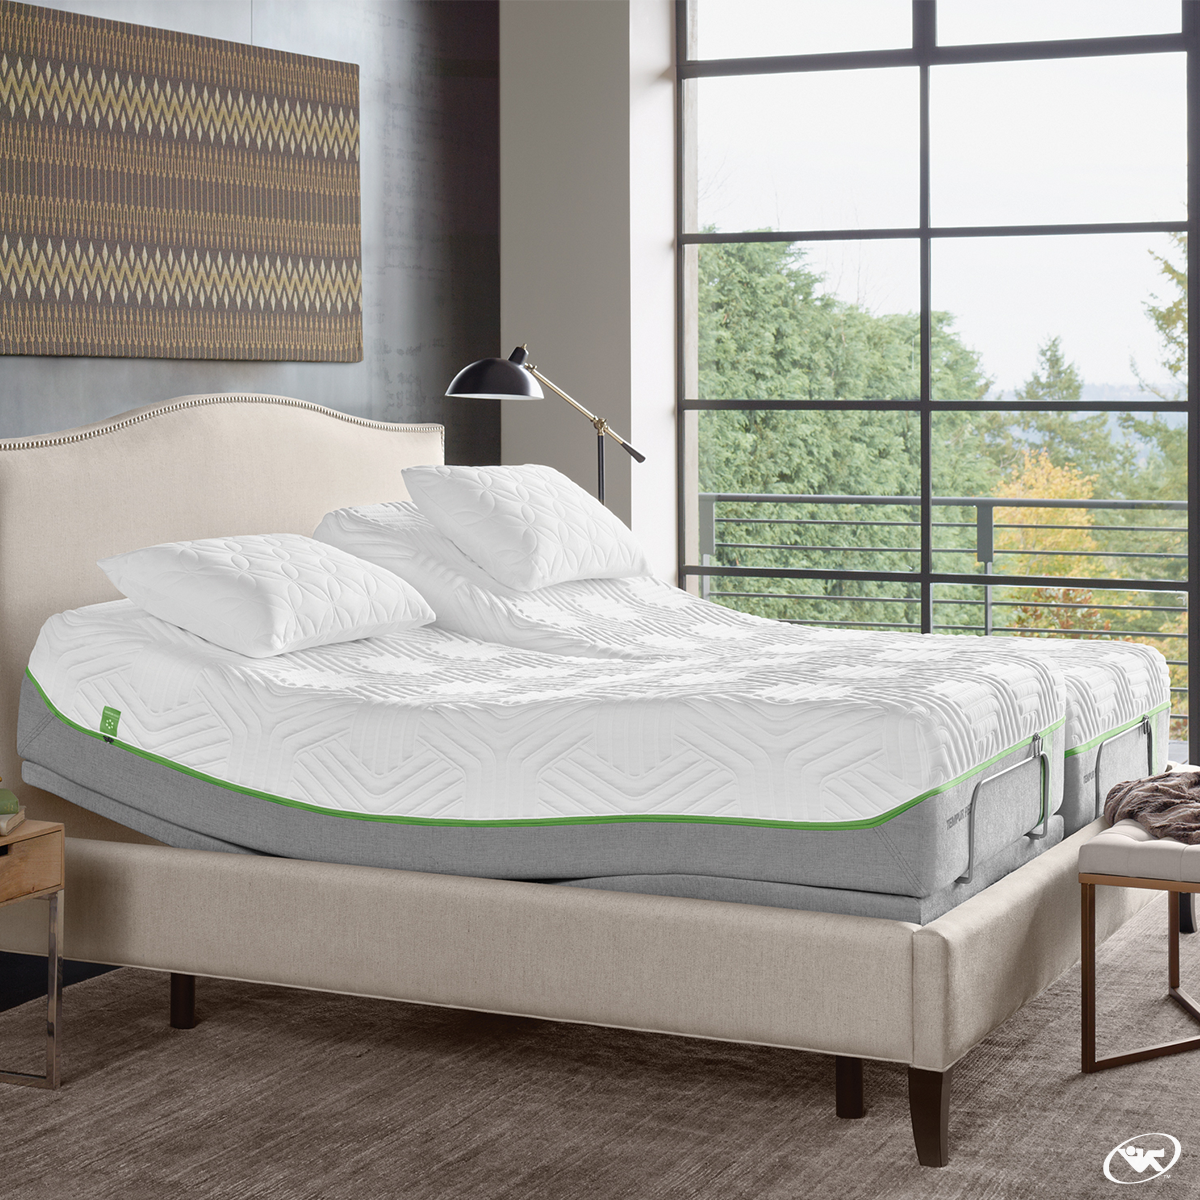 Sleep easier throughout the night with a TempurPedic